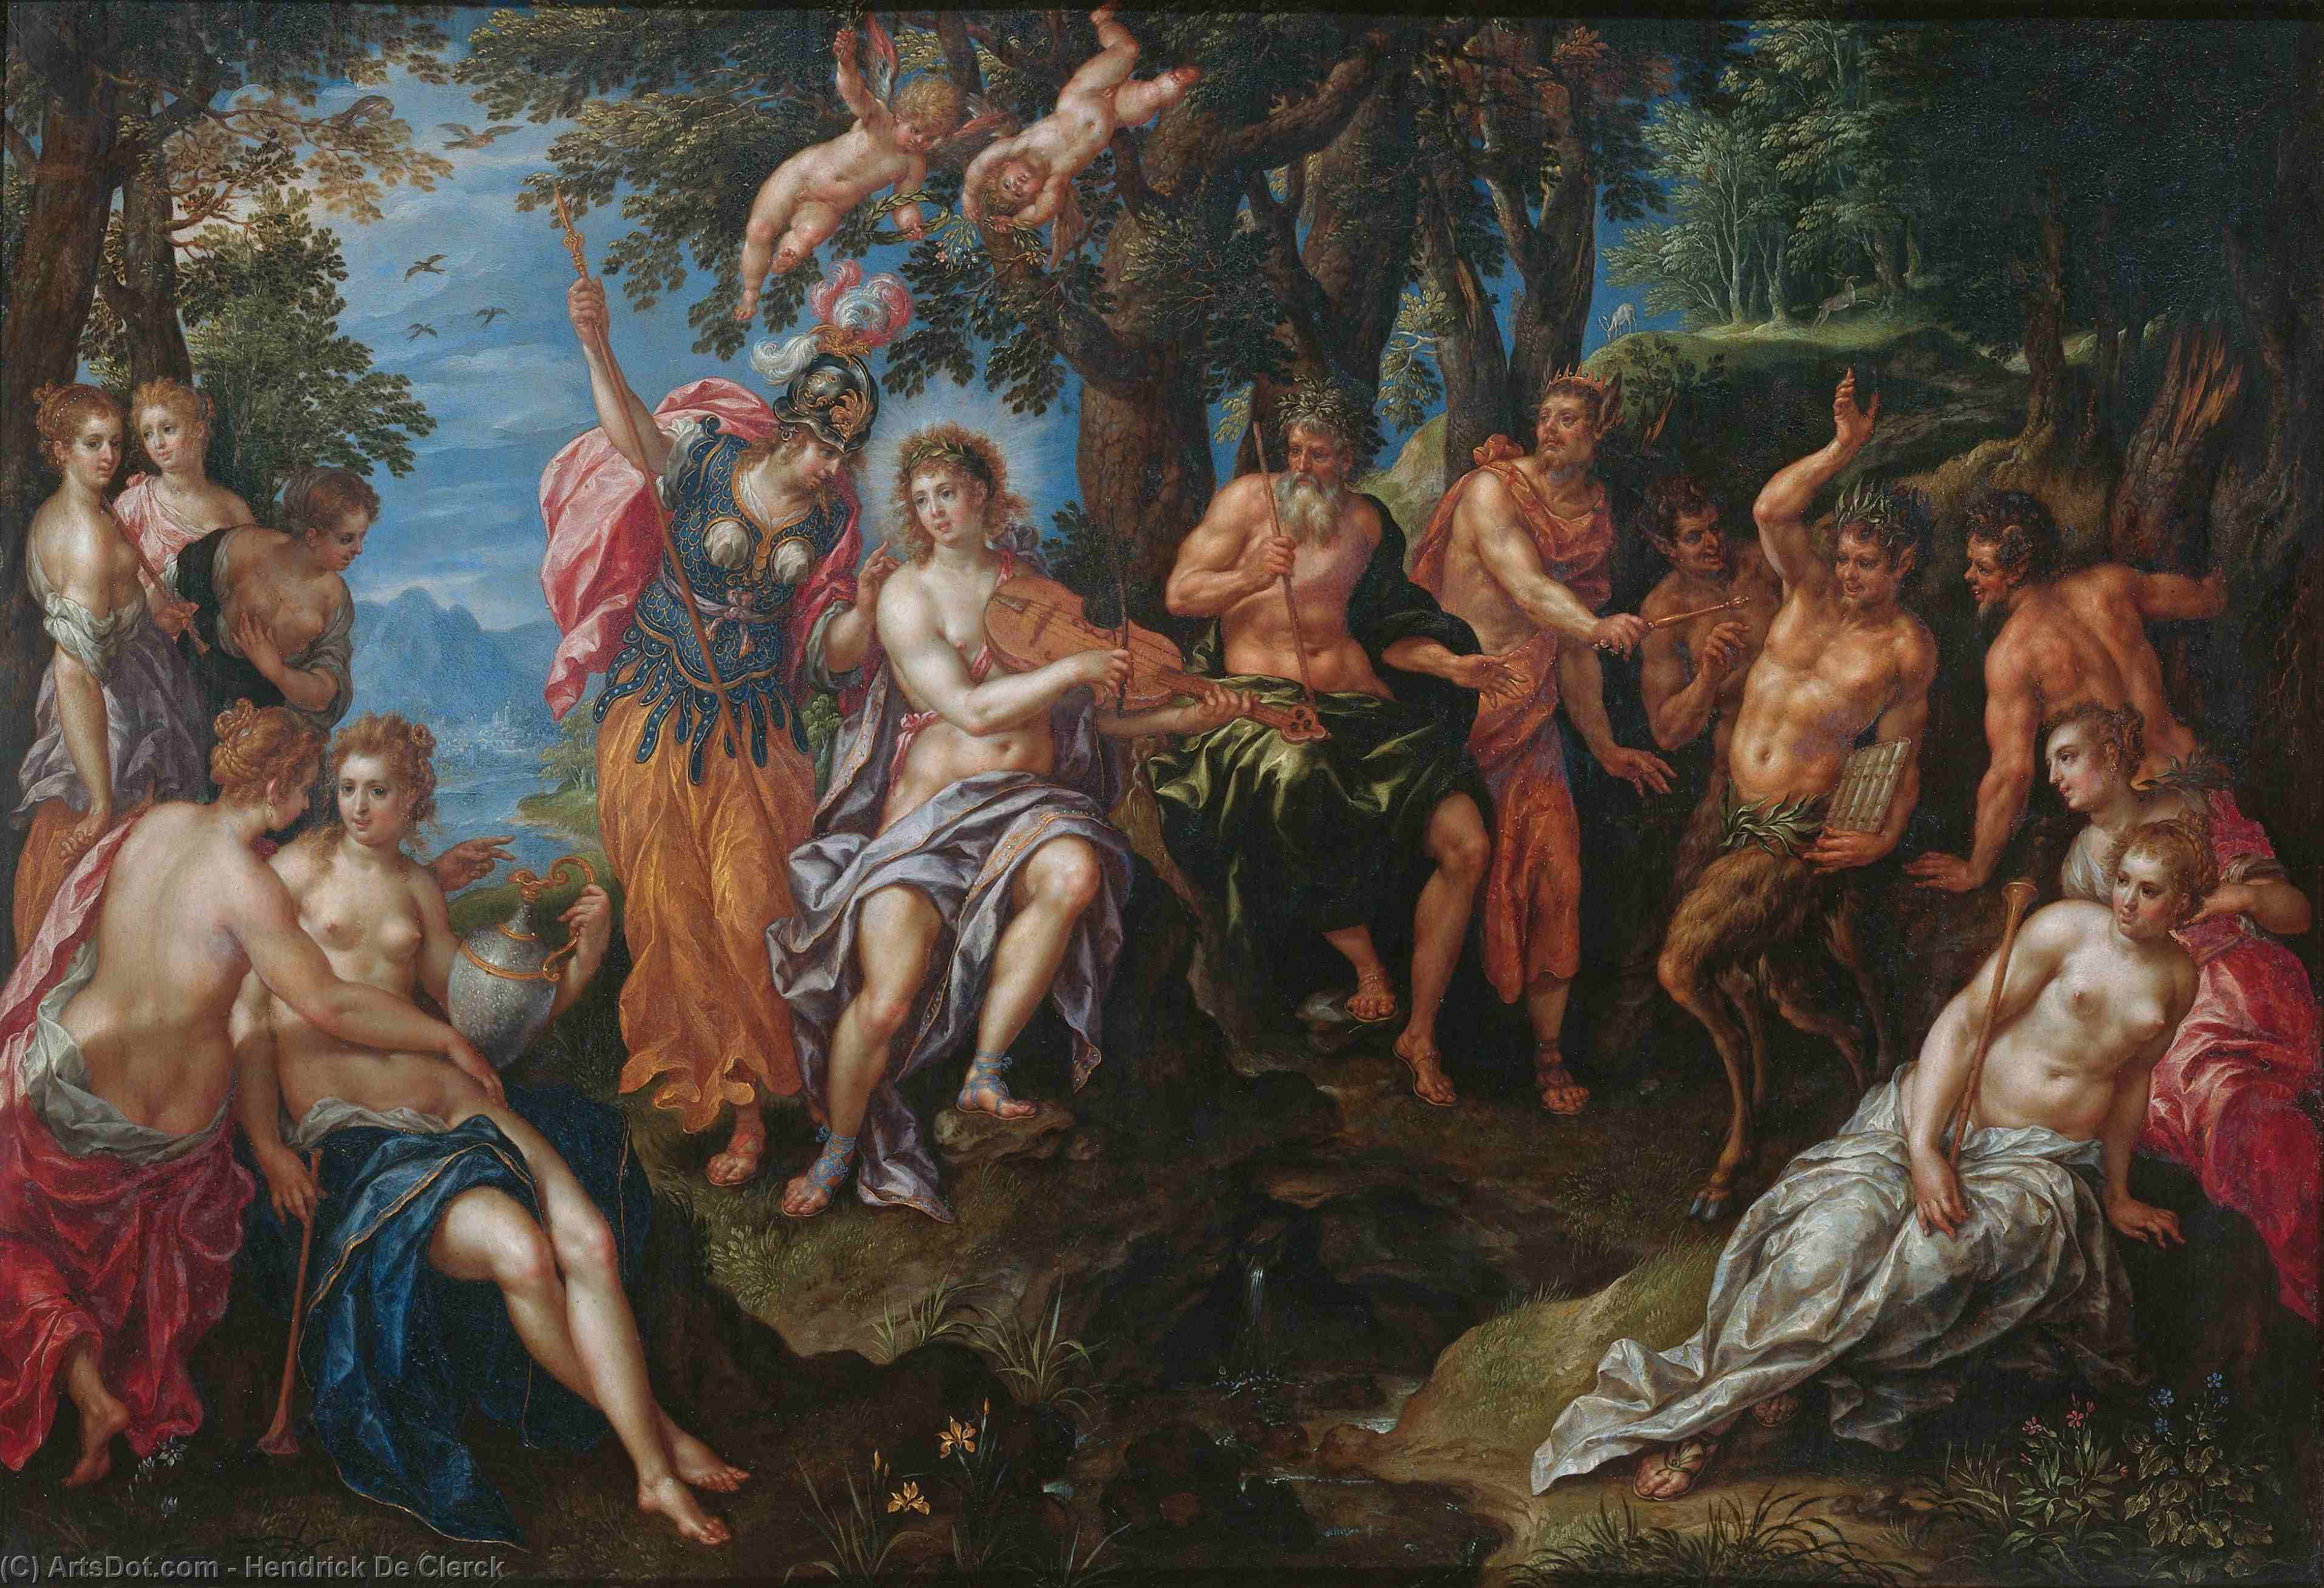 The contest between Apollo and Pan by Hendrick De Clerck (1570-1630) | ArtsDot.com